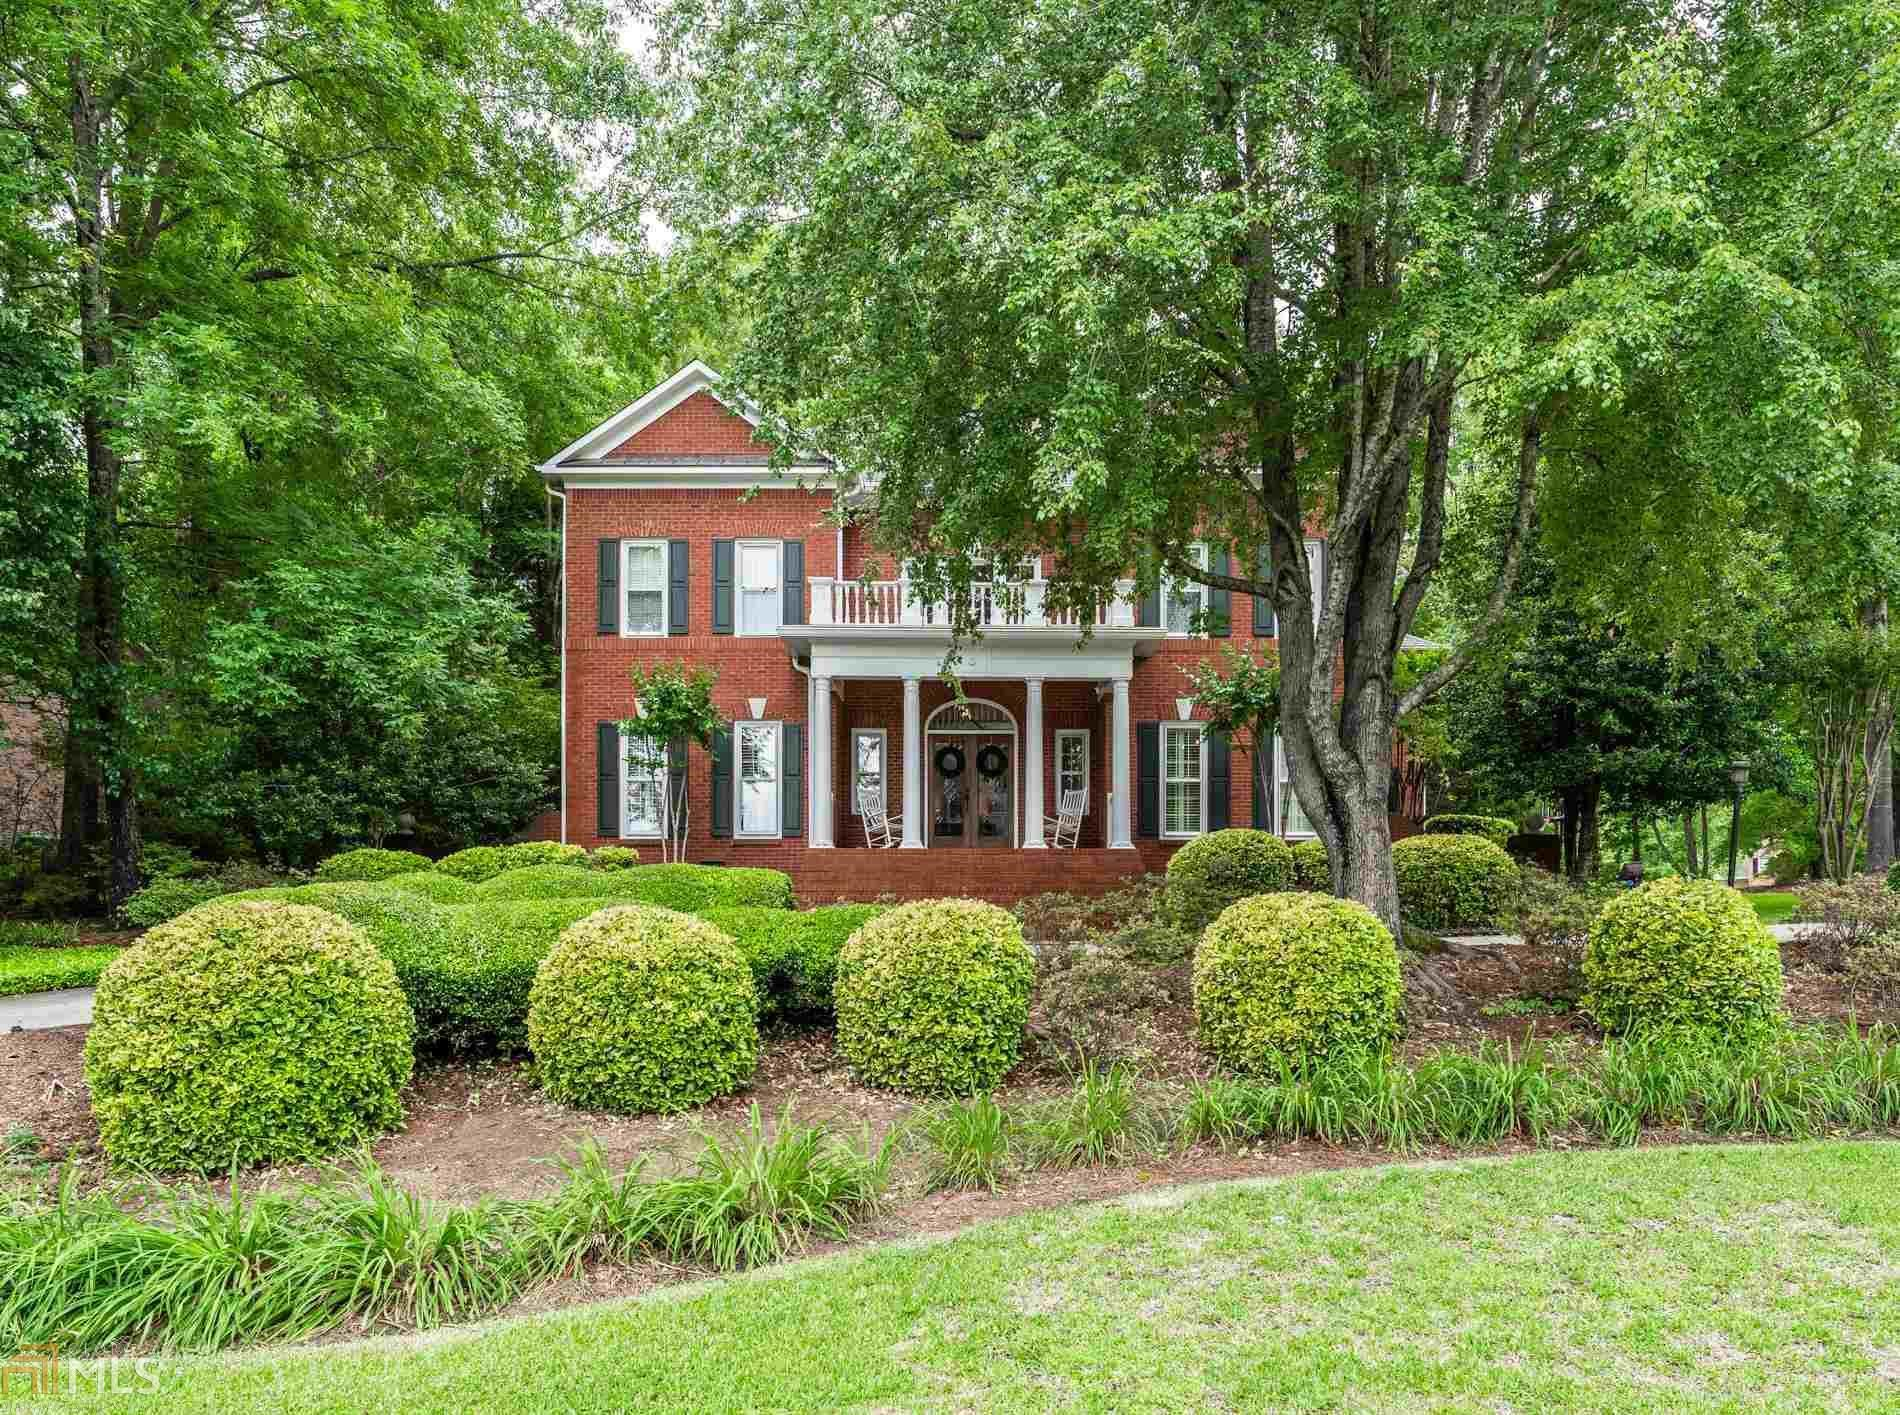 180 Rivoli Downs Dr, Macon, GA 31210 - MLS#: 8973235